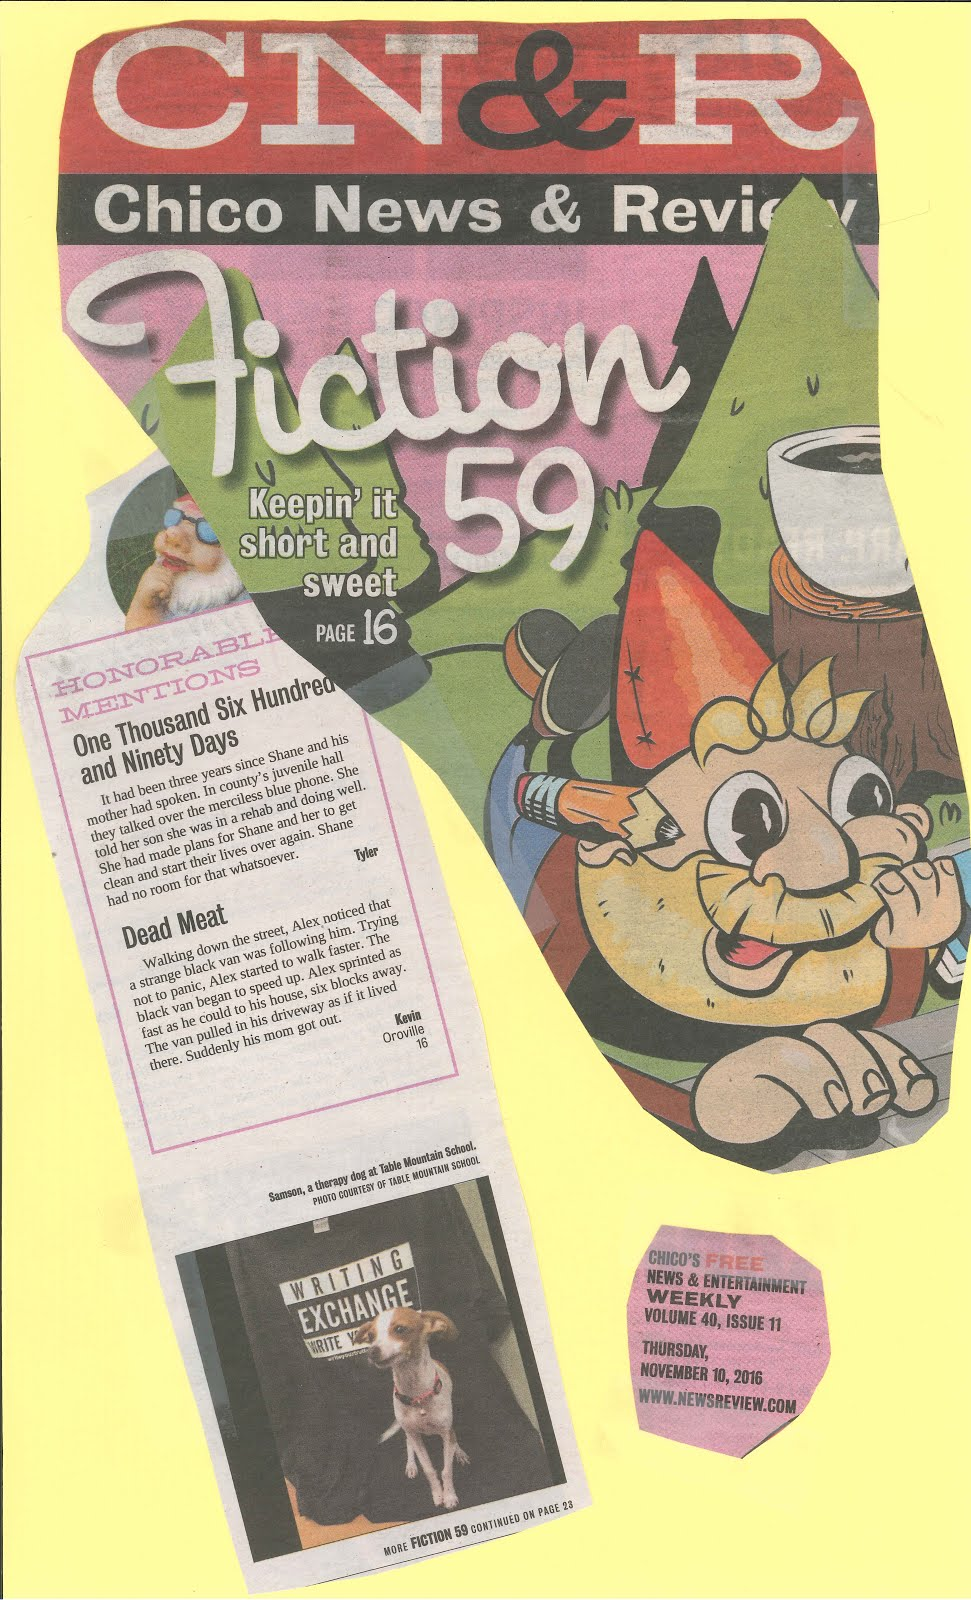 2016 CNR Fiction 59